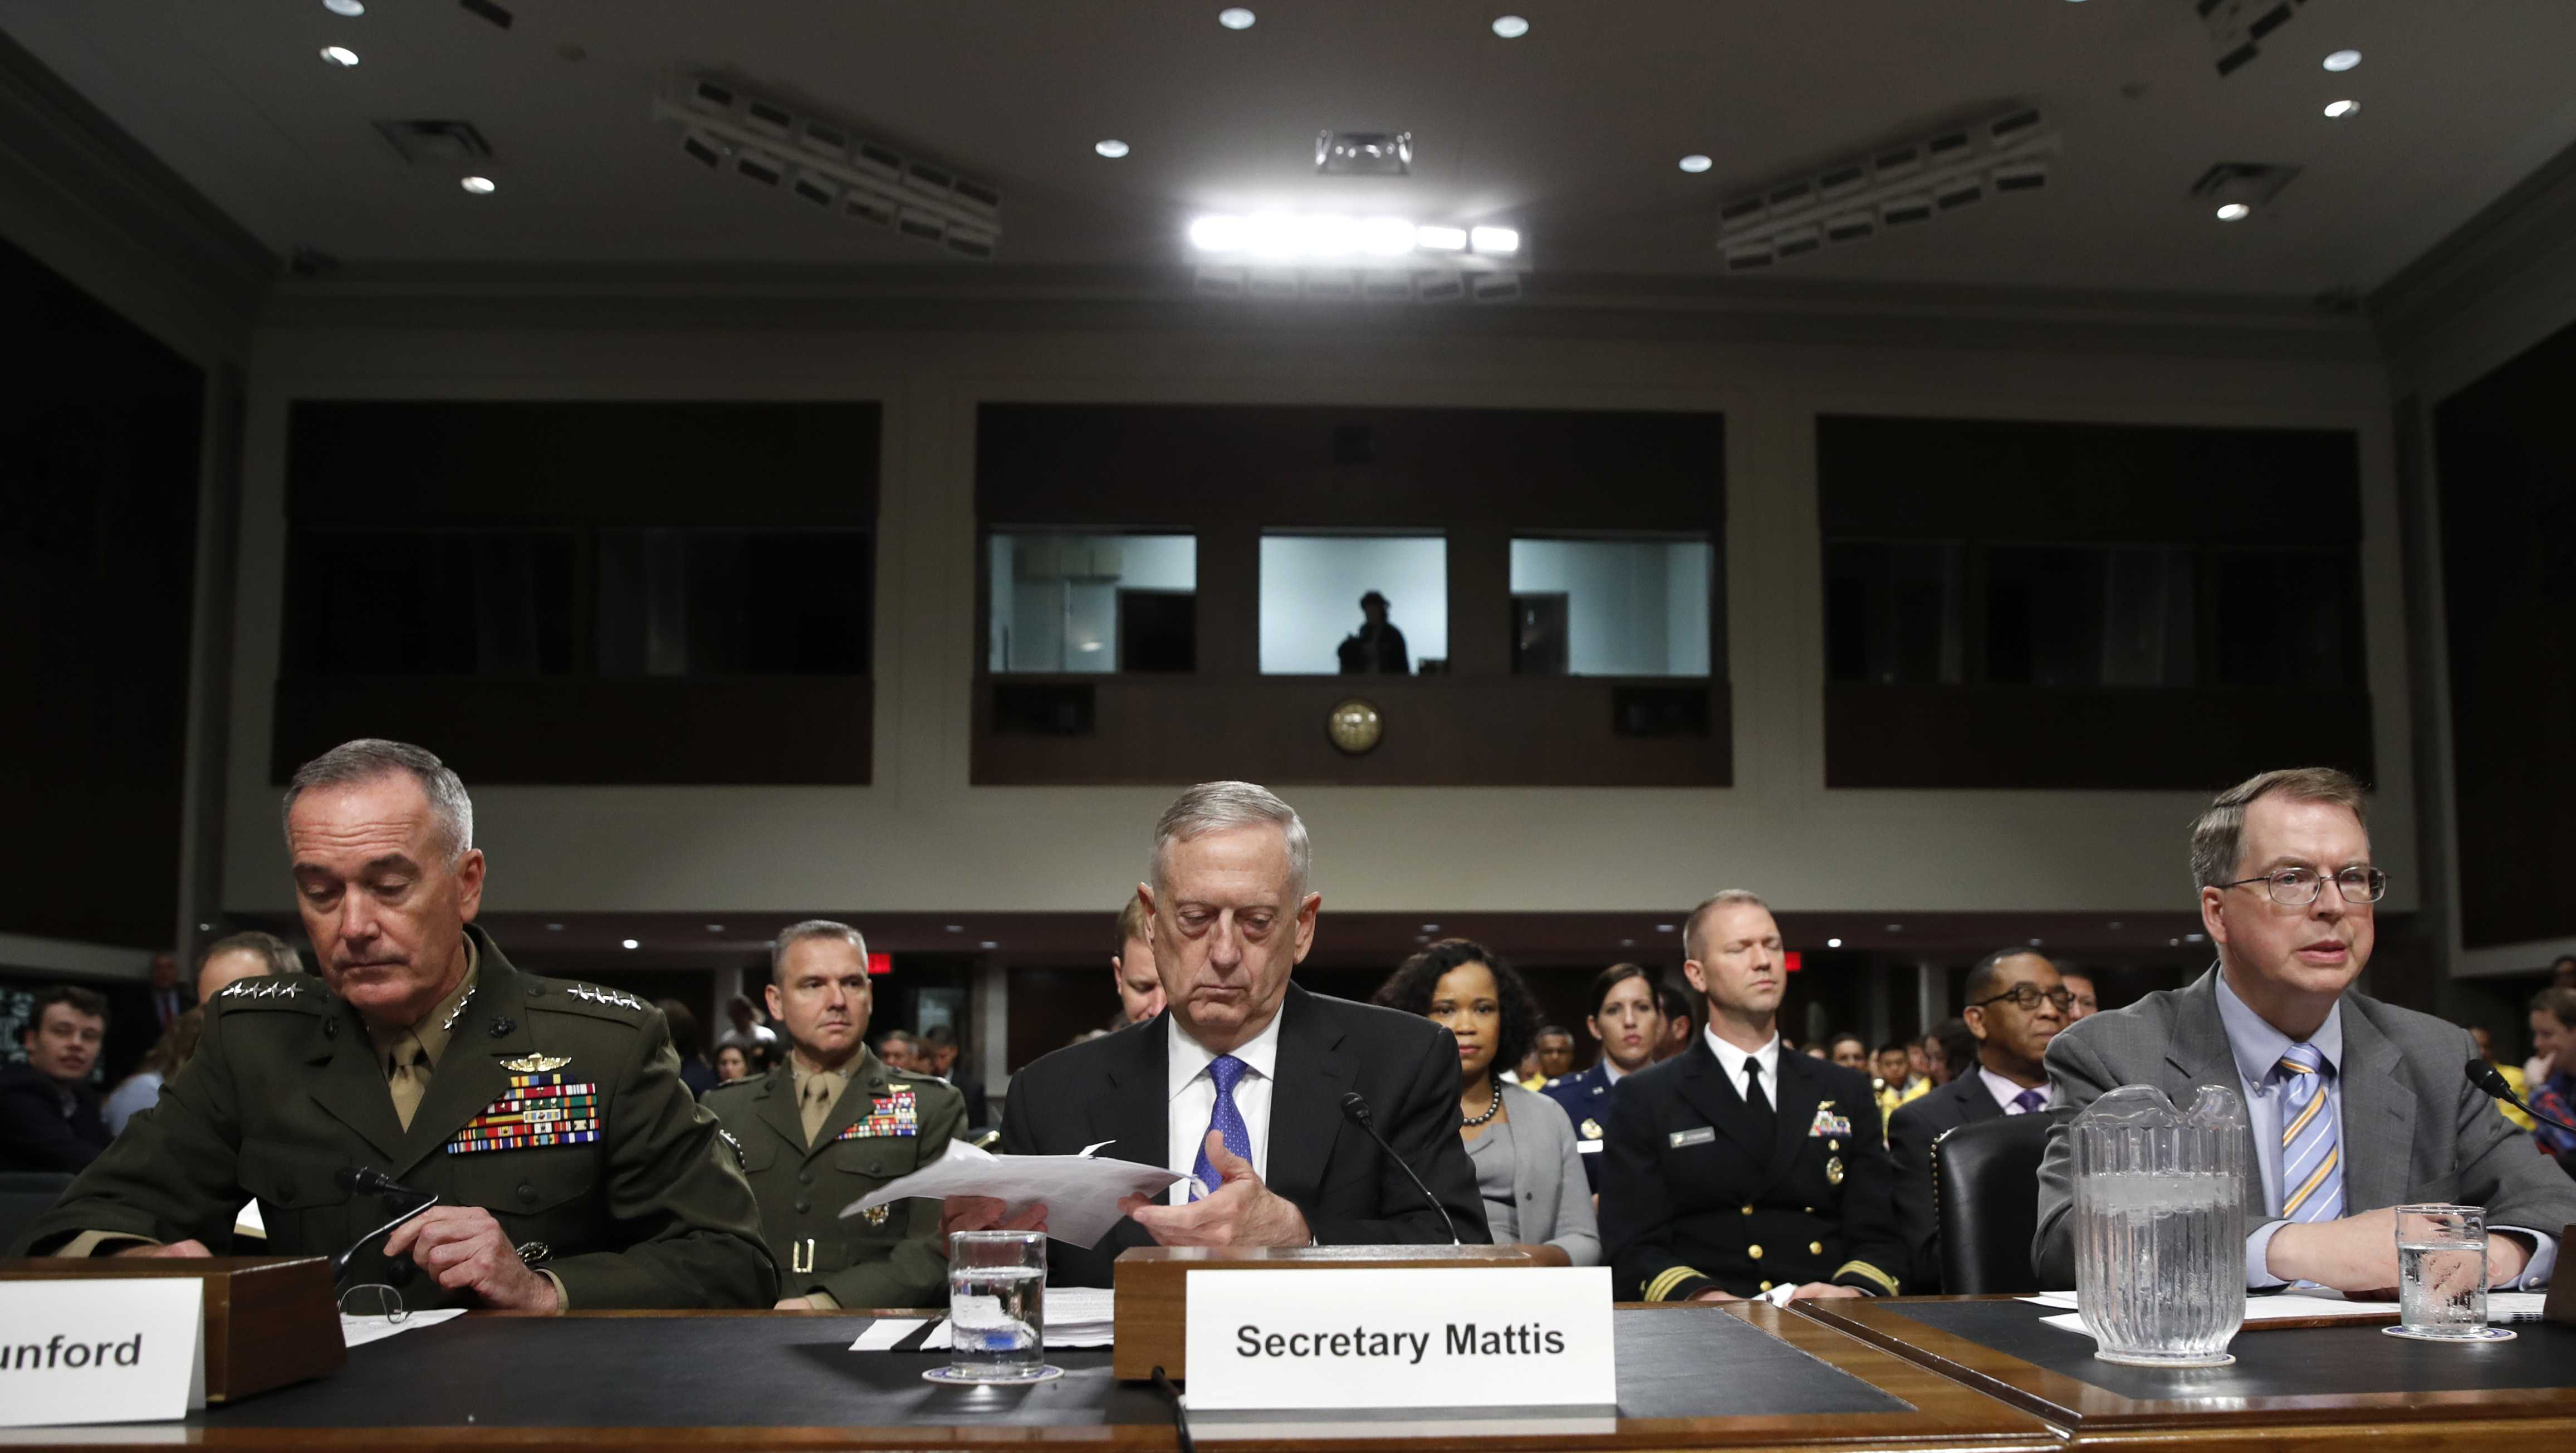 Defense Secretary Jim Mattis, center, flanked by Joint Chiefs Chairman Gen. Joseph Dunford, left, and Defense Undersecretary David Norquist, prepares to testify on Capitol Hill in Washington, Tuesday, June 13, 2017, before a Senate Armed Services Committee hearing on the defense department's budget.